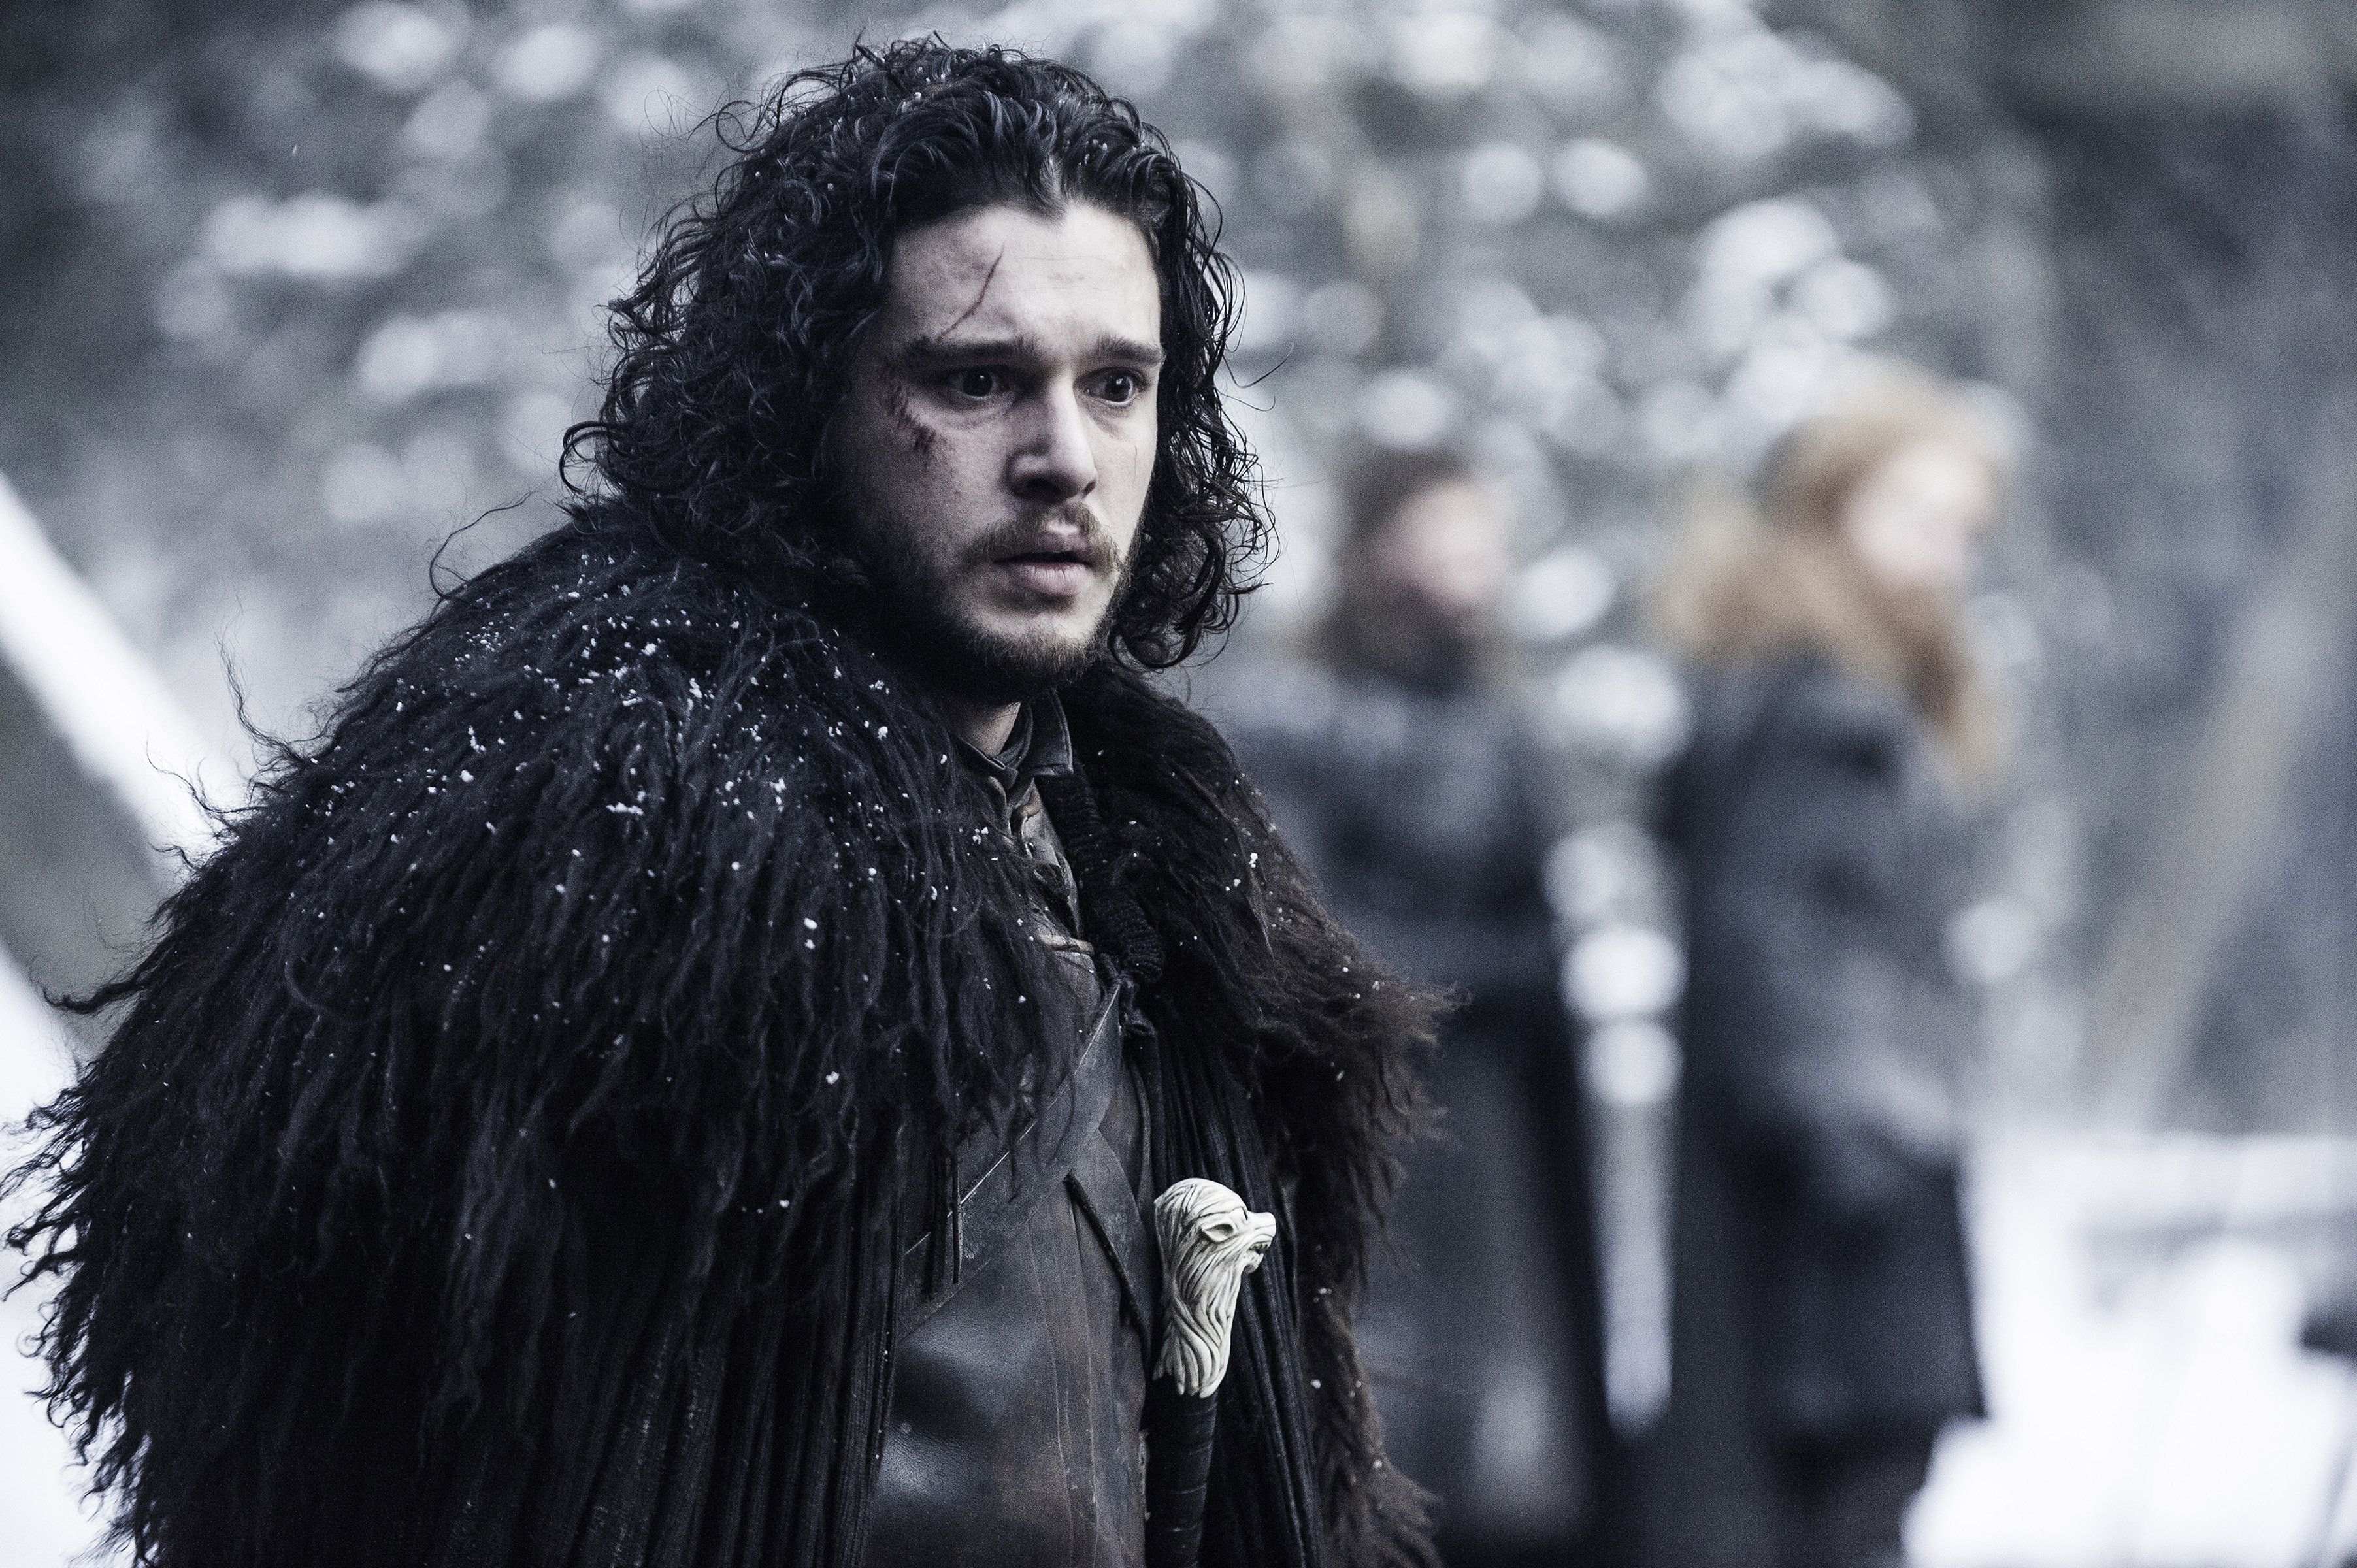 You know nothing about security, Jon